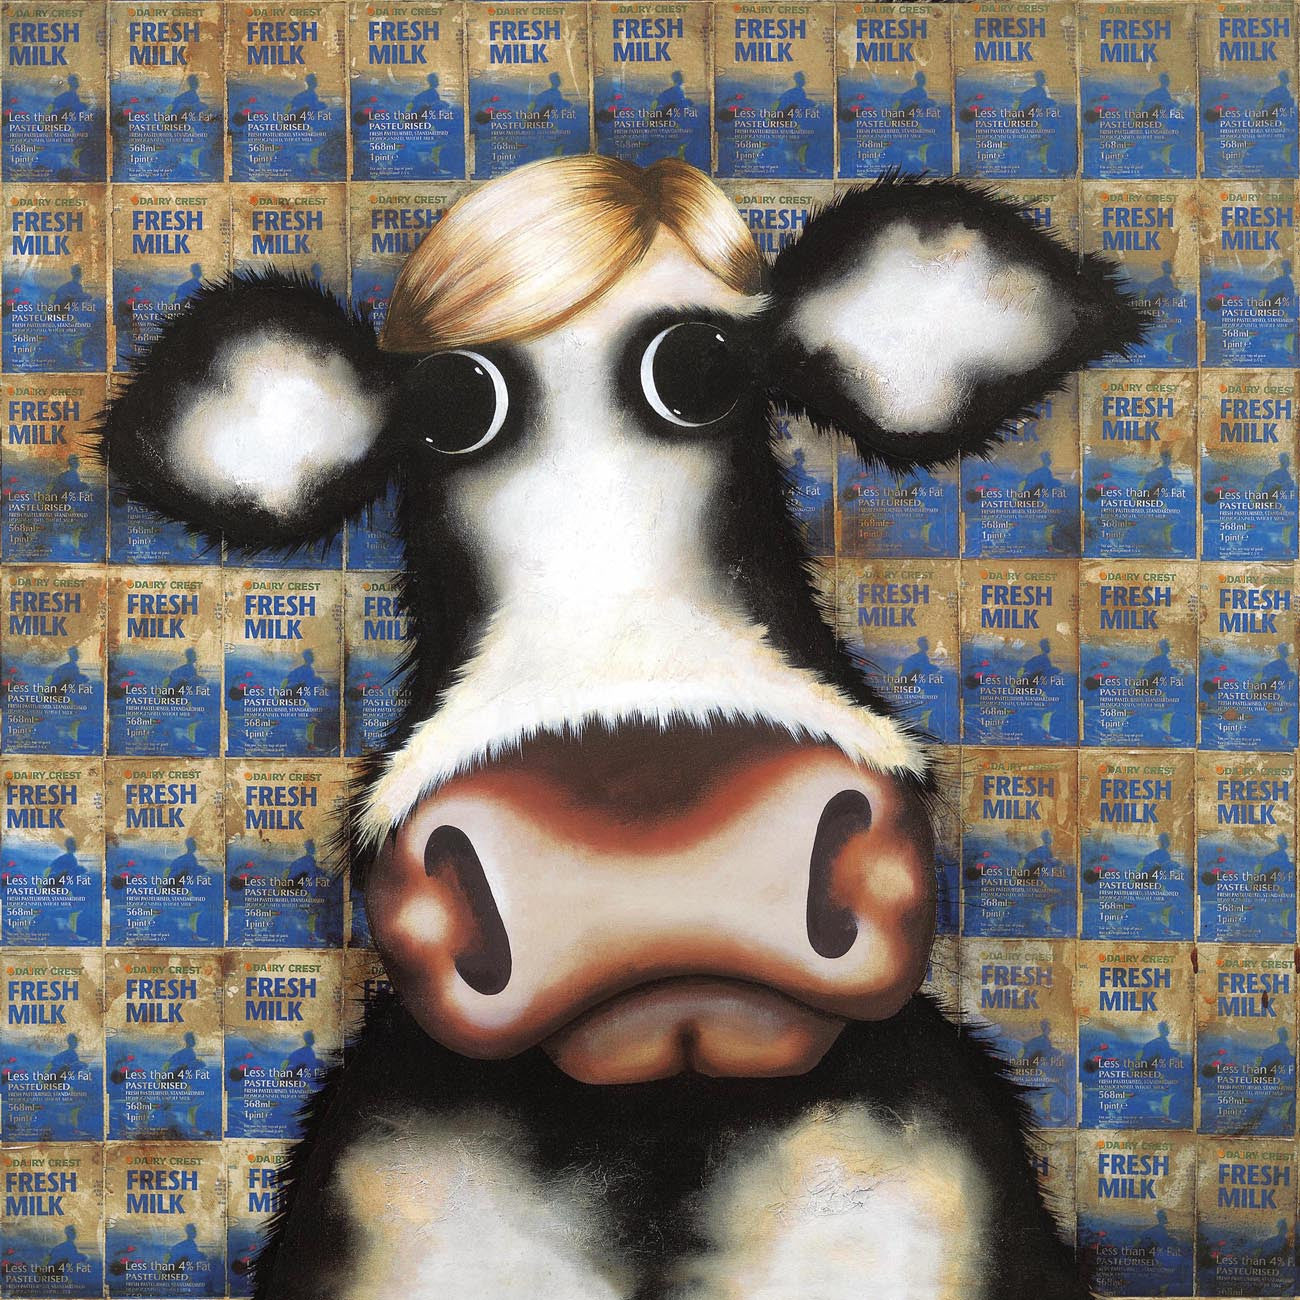 Milk Cartons - Homage To Warhol - 2010 - Caroline Shotton -Low Availability, please check before ordering - Antidote Art